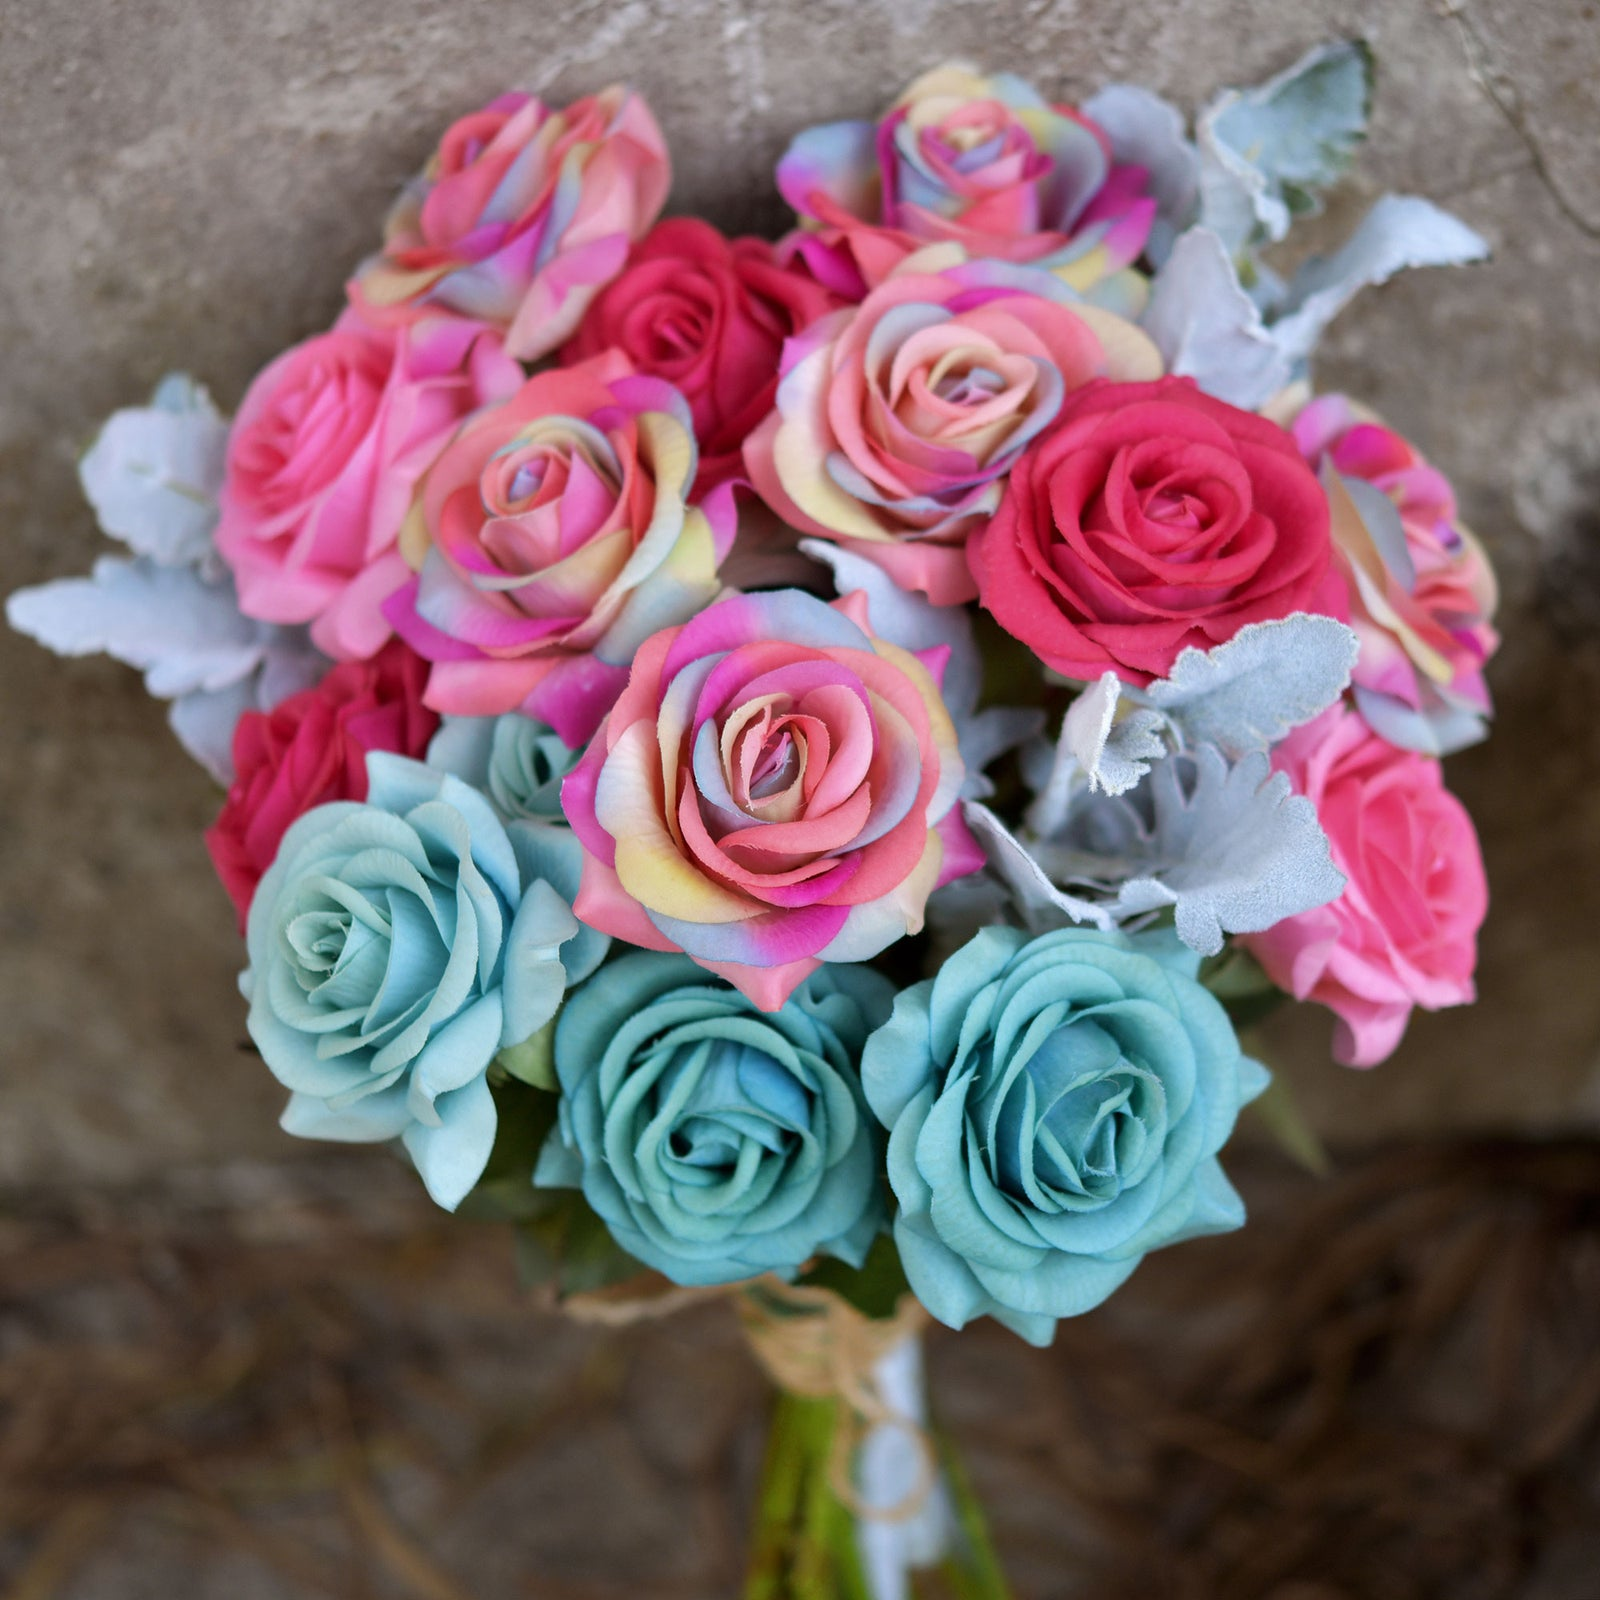 Mixed Pink Flowers Bridal Bouquet With Greenery And Wire Swirls